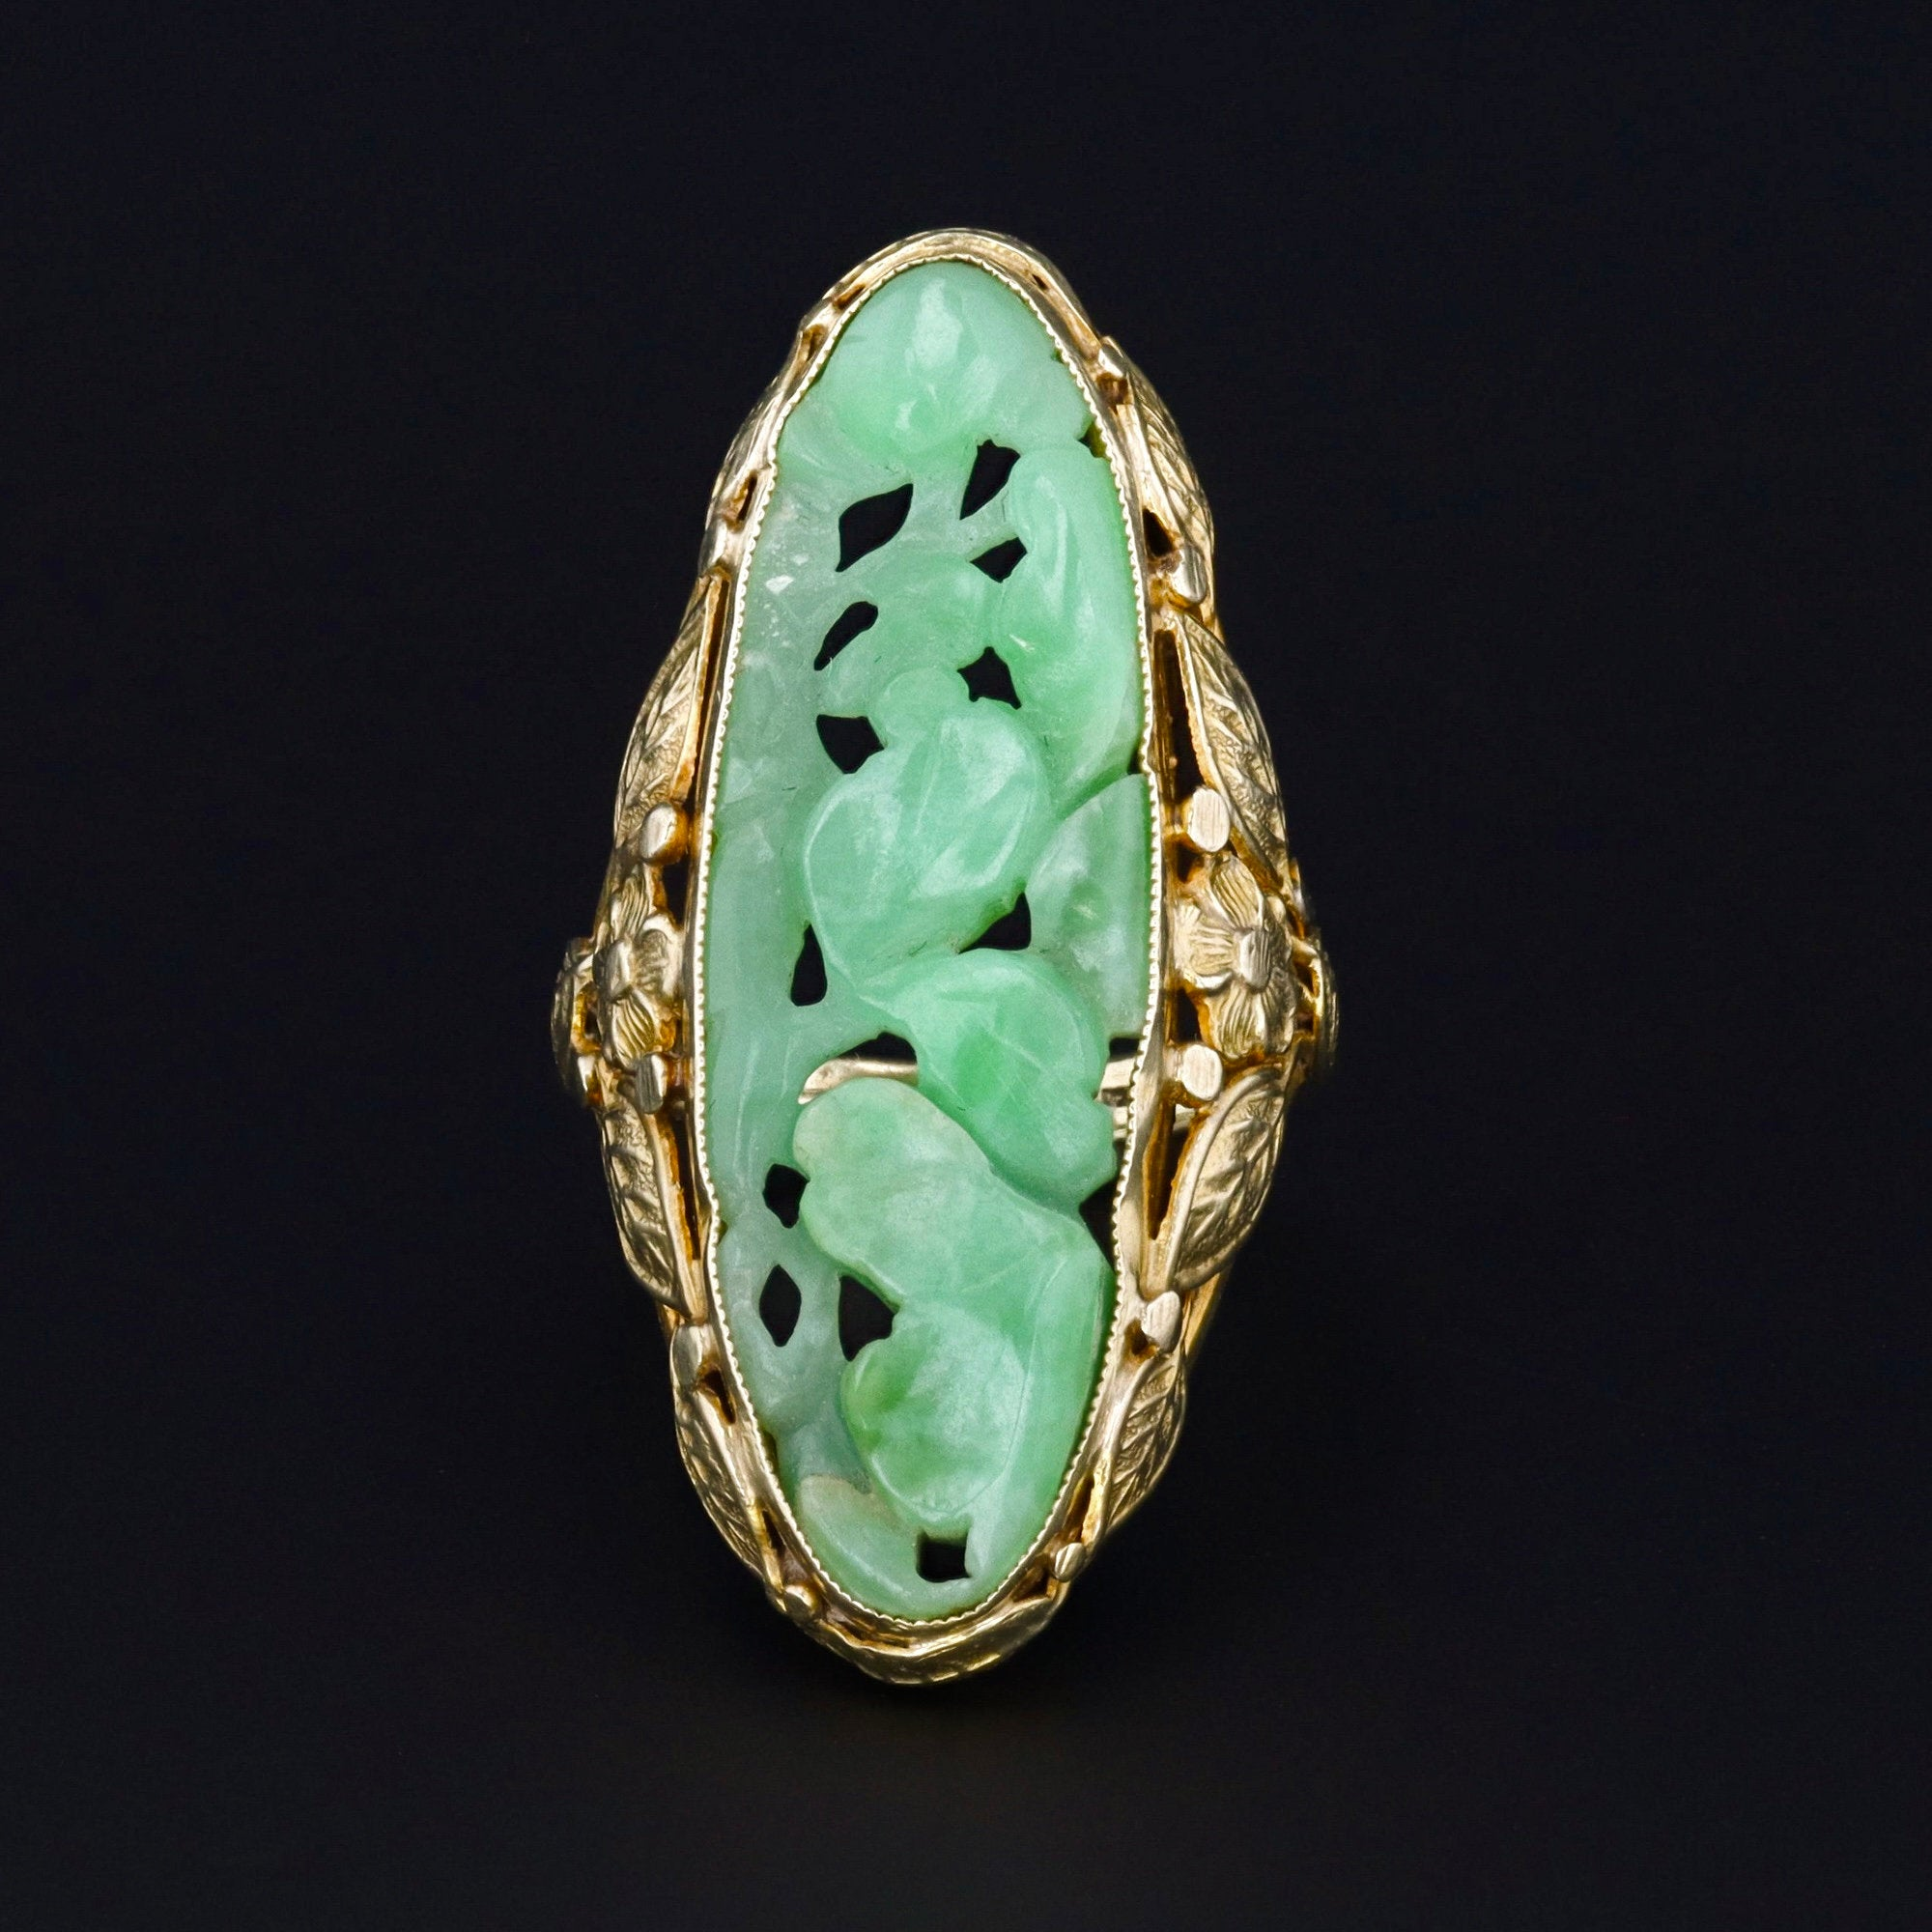 Art Deco Jade Ring | Carved Jade Ring | Vintage Jade Ring | Jade Enamel & Pearl Ring | 14k Gold Ring